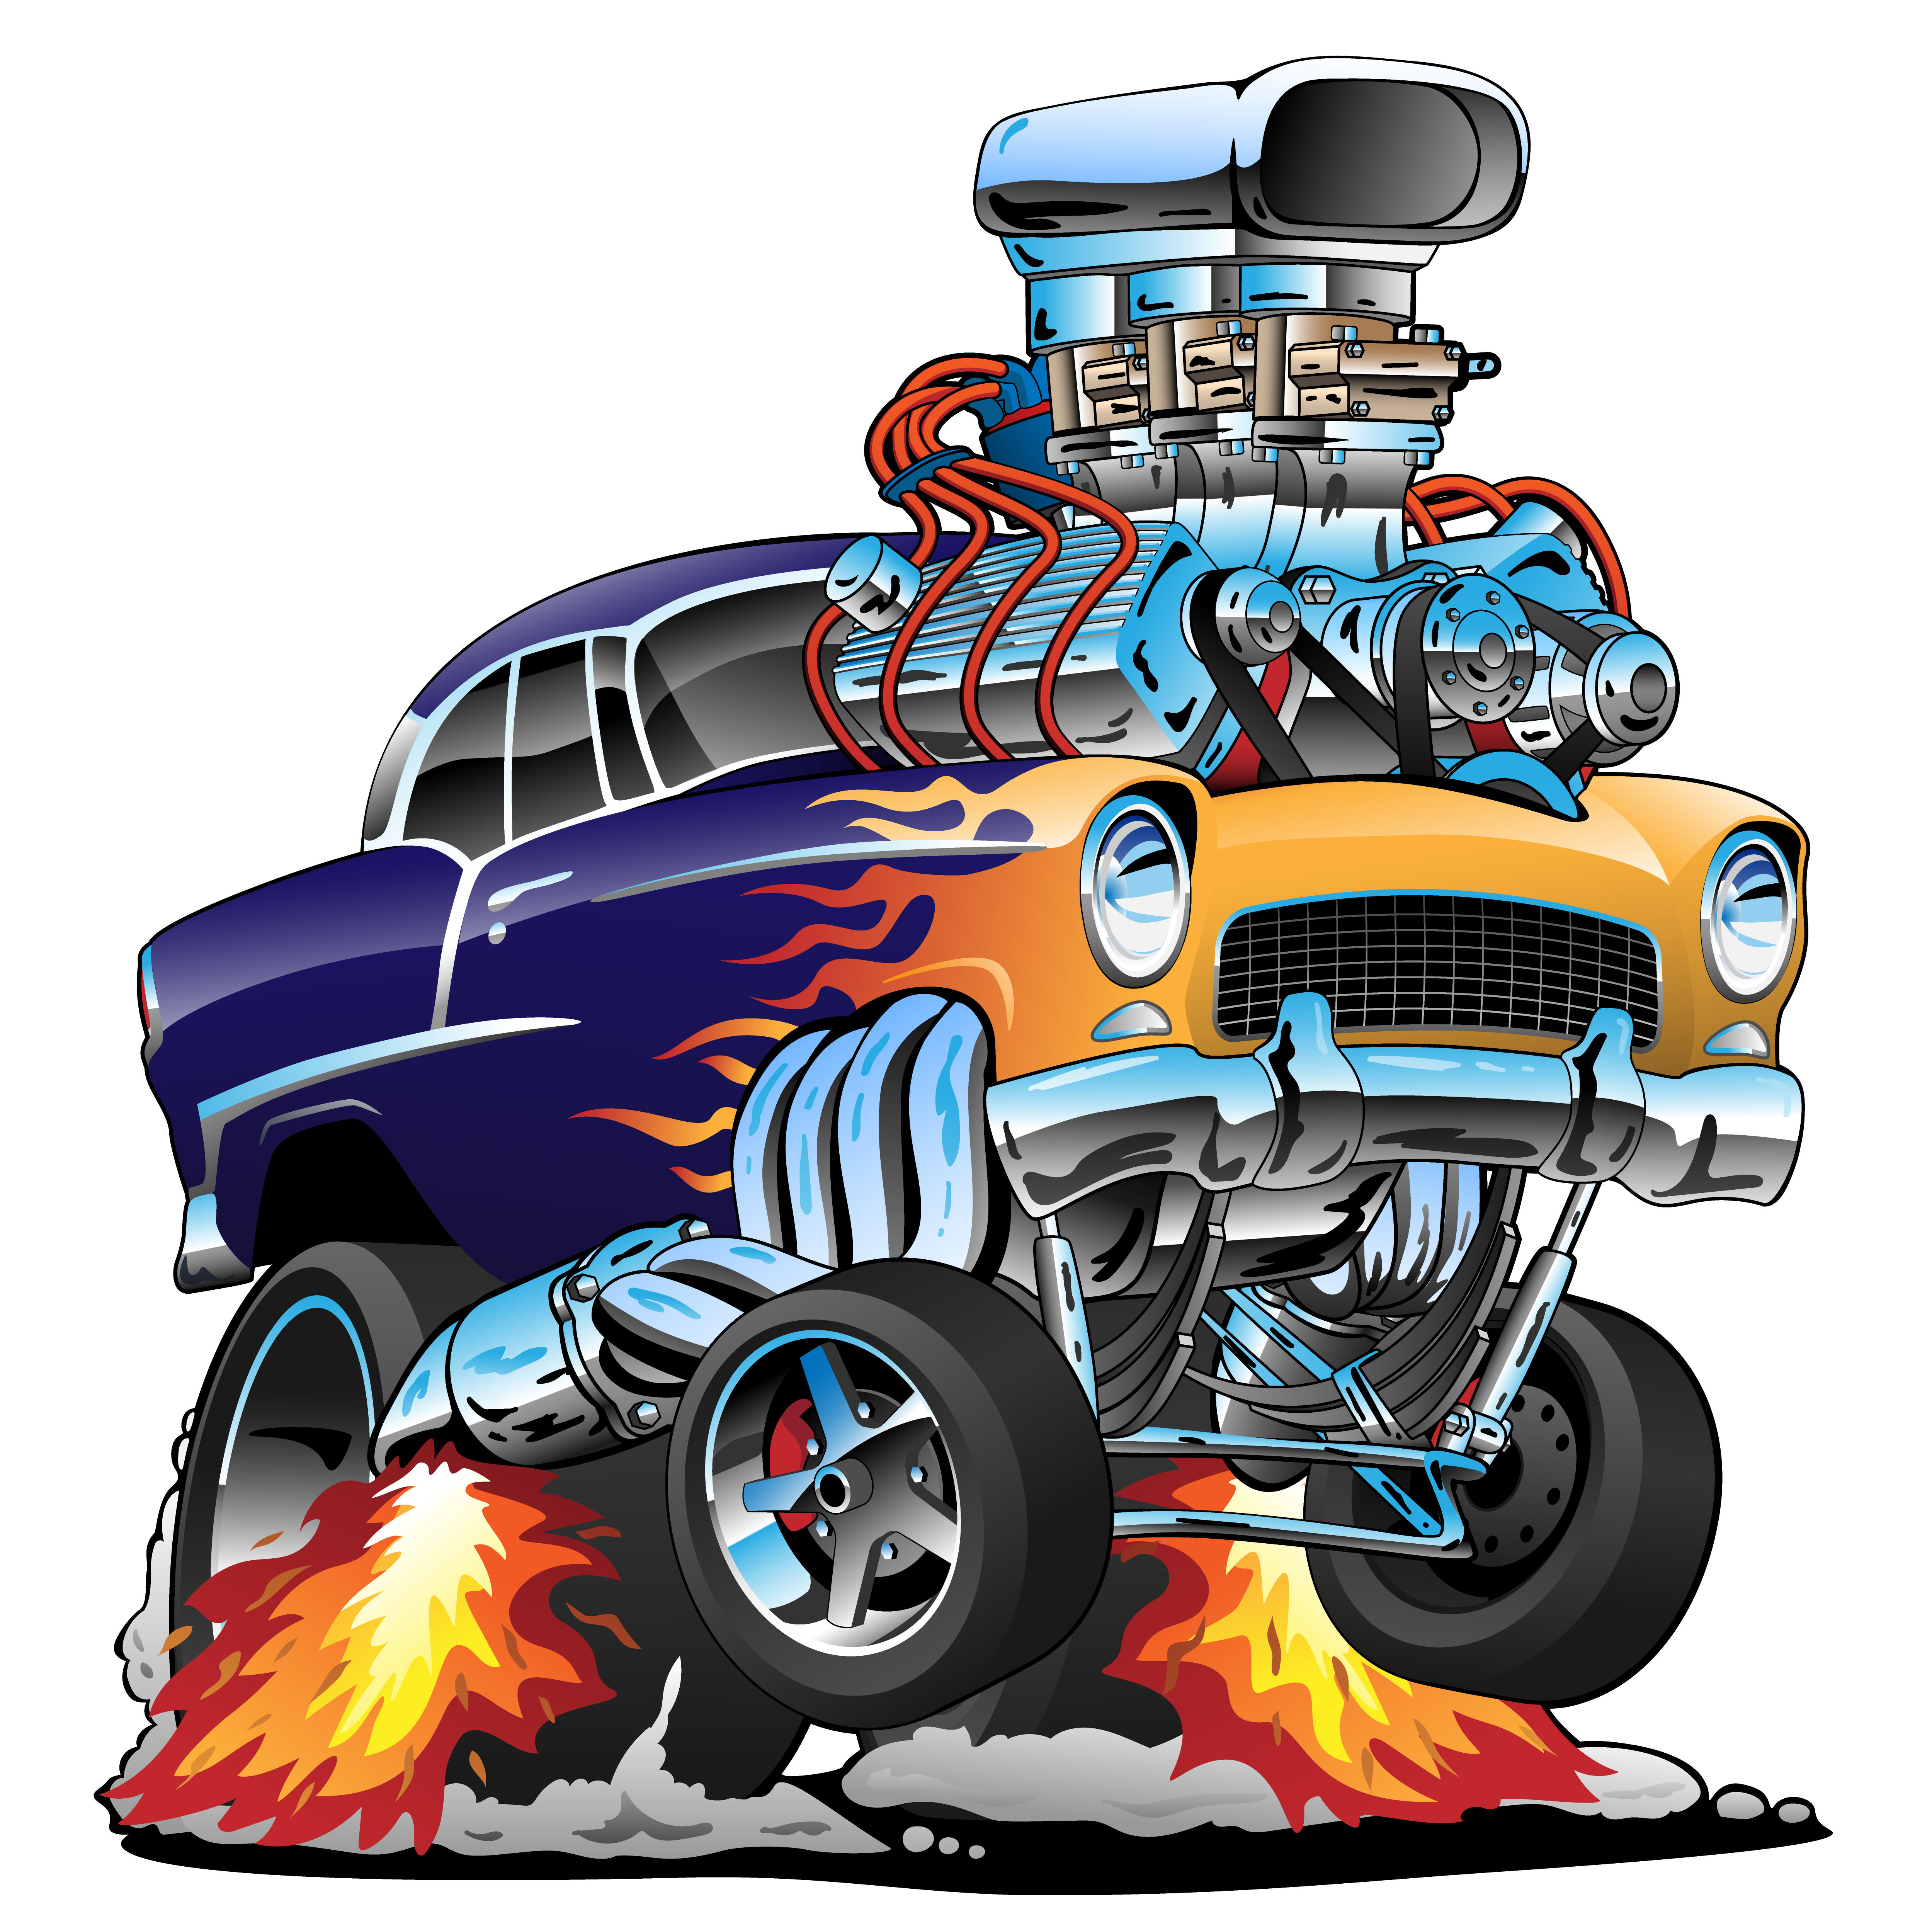 Classic Hot Rod Muscle Car Flames Big Engine Cartoon Vector Illustration Download Free Vectors Clipart Graphics Vector Art